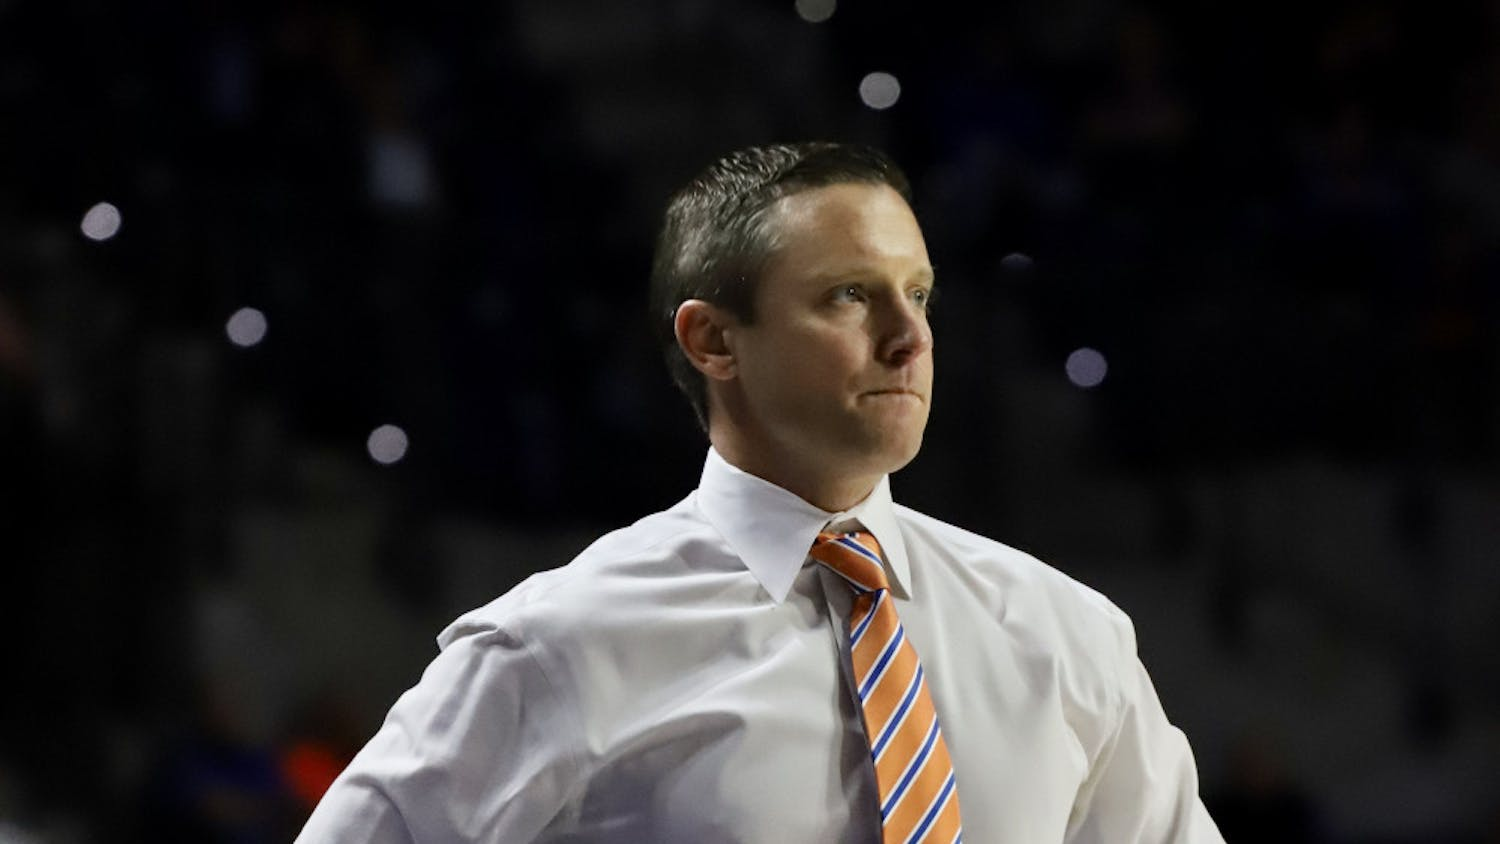 The Gators' pushed back their 2020-2021 debut yet again due to another COVID-19 outbreak. This time, Florida's opponent, Oklahoma, caused the cancelation.